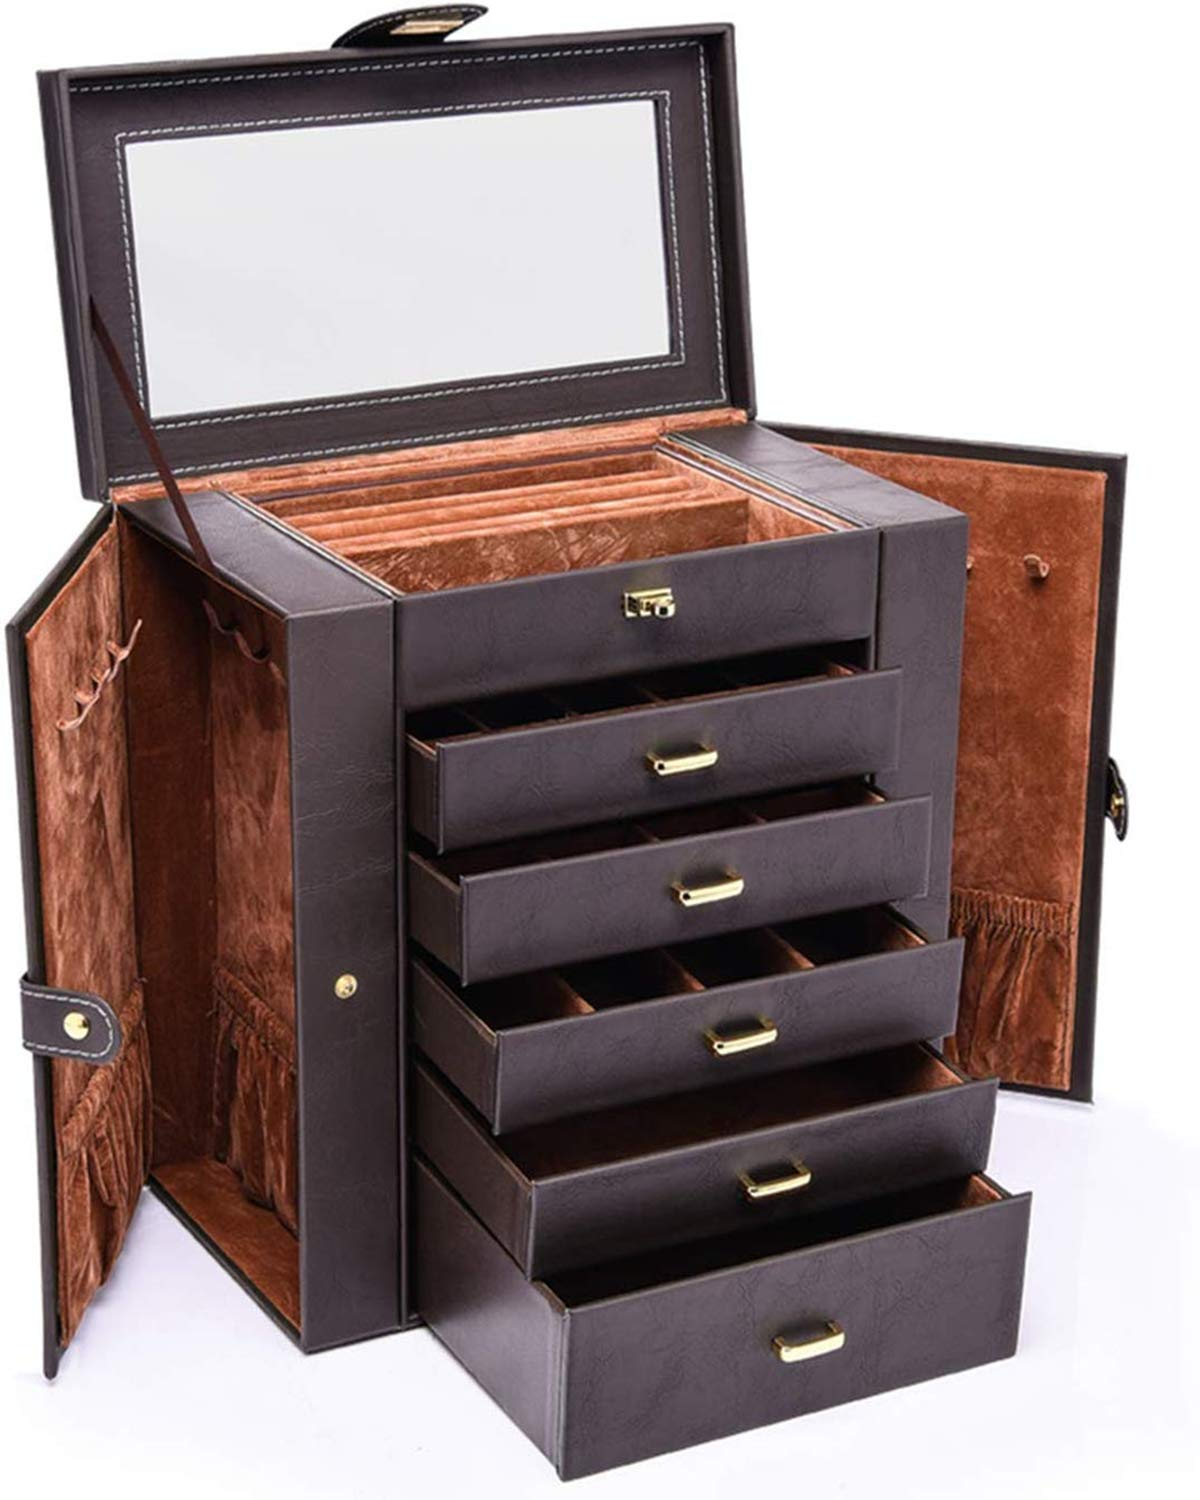 HEZALA Large Jewelry Organizer, 6 Layer Huge Leather Jewelry Box for Women with Mirror, Watch Necklace Ring Earring Bracelet Storage Case with Drawers, Brown by HEZALA